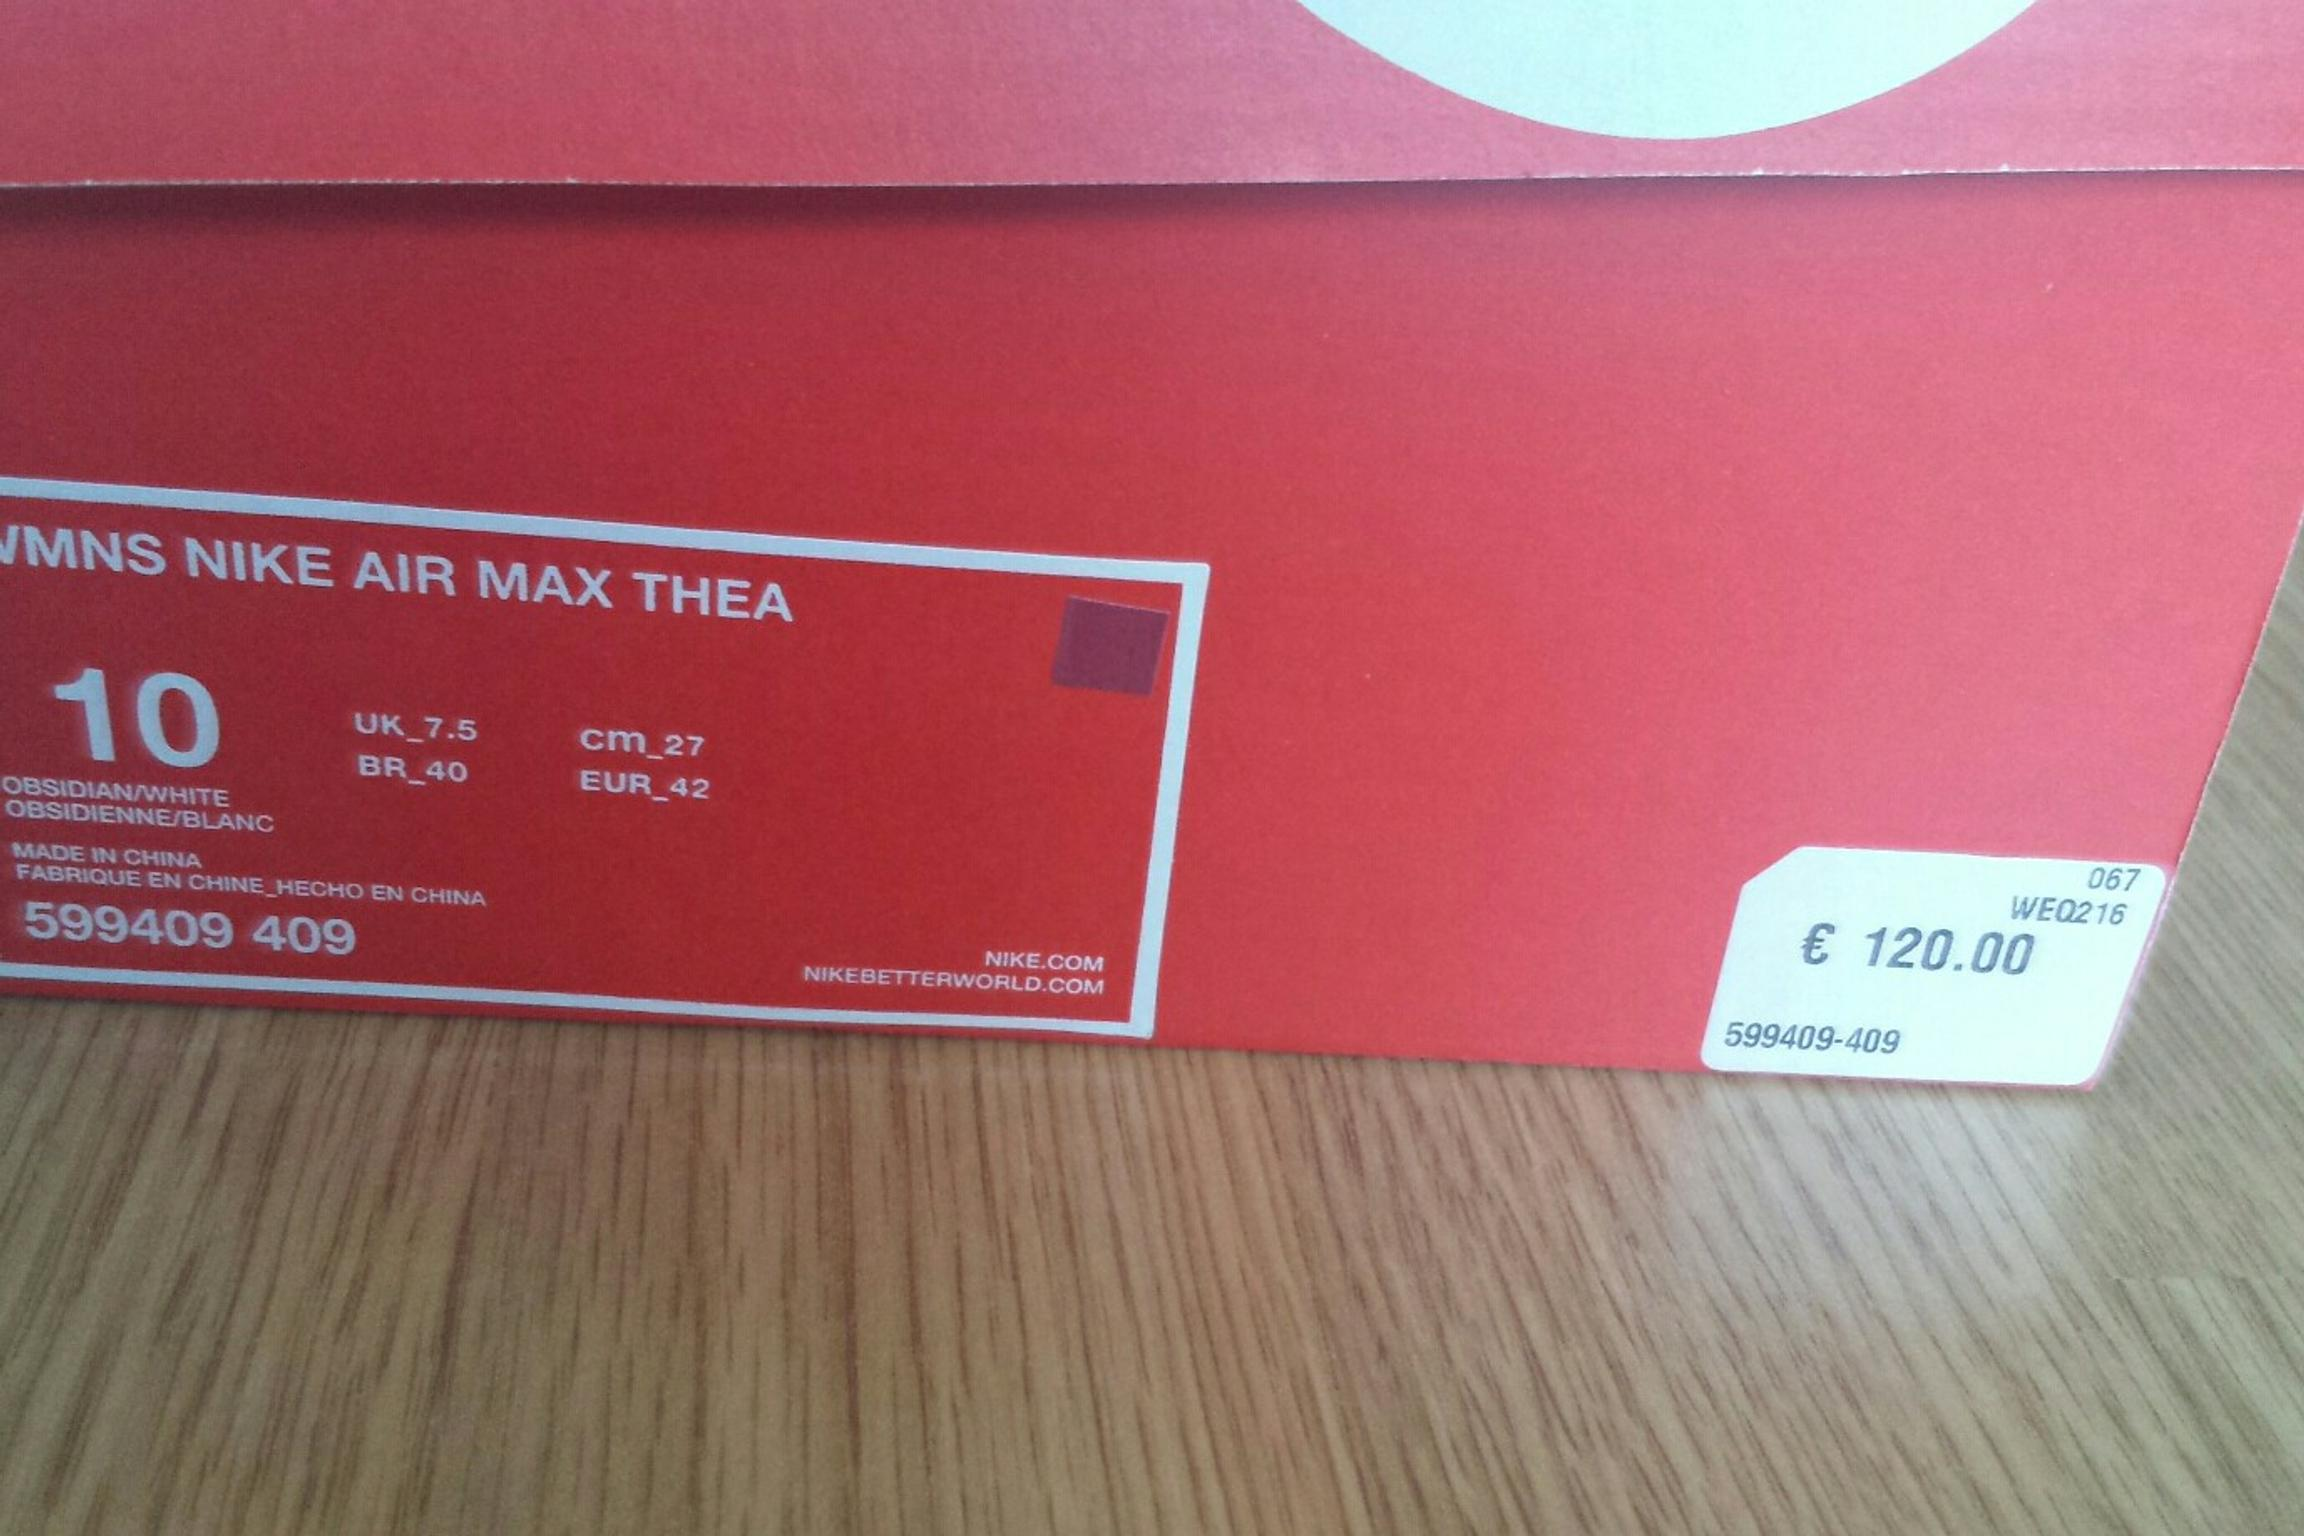 Nike Air Max Thea in 80339 München for €50.00 for sale Shpock